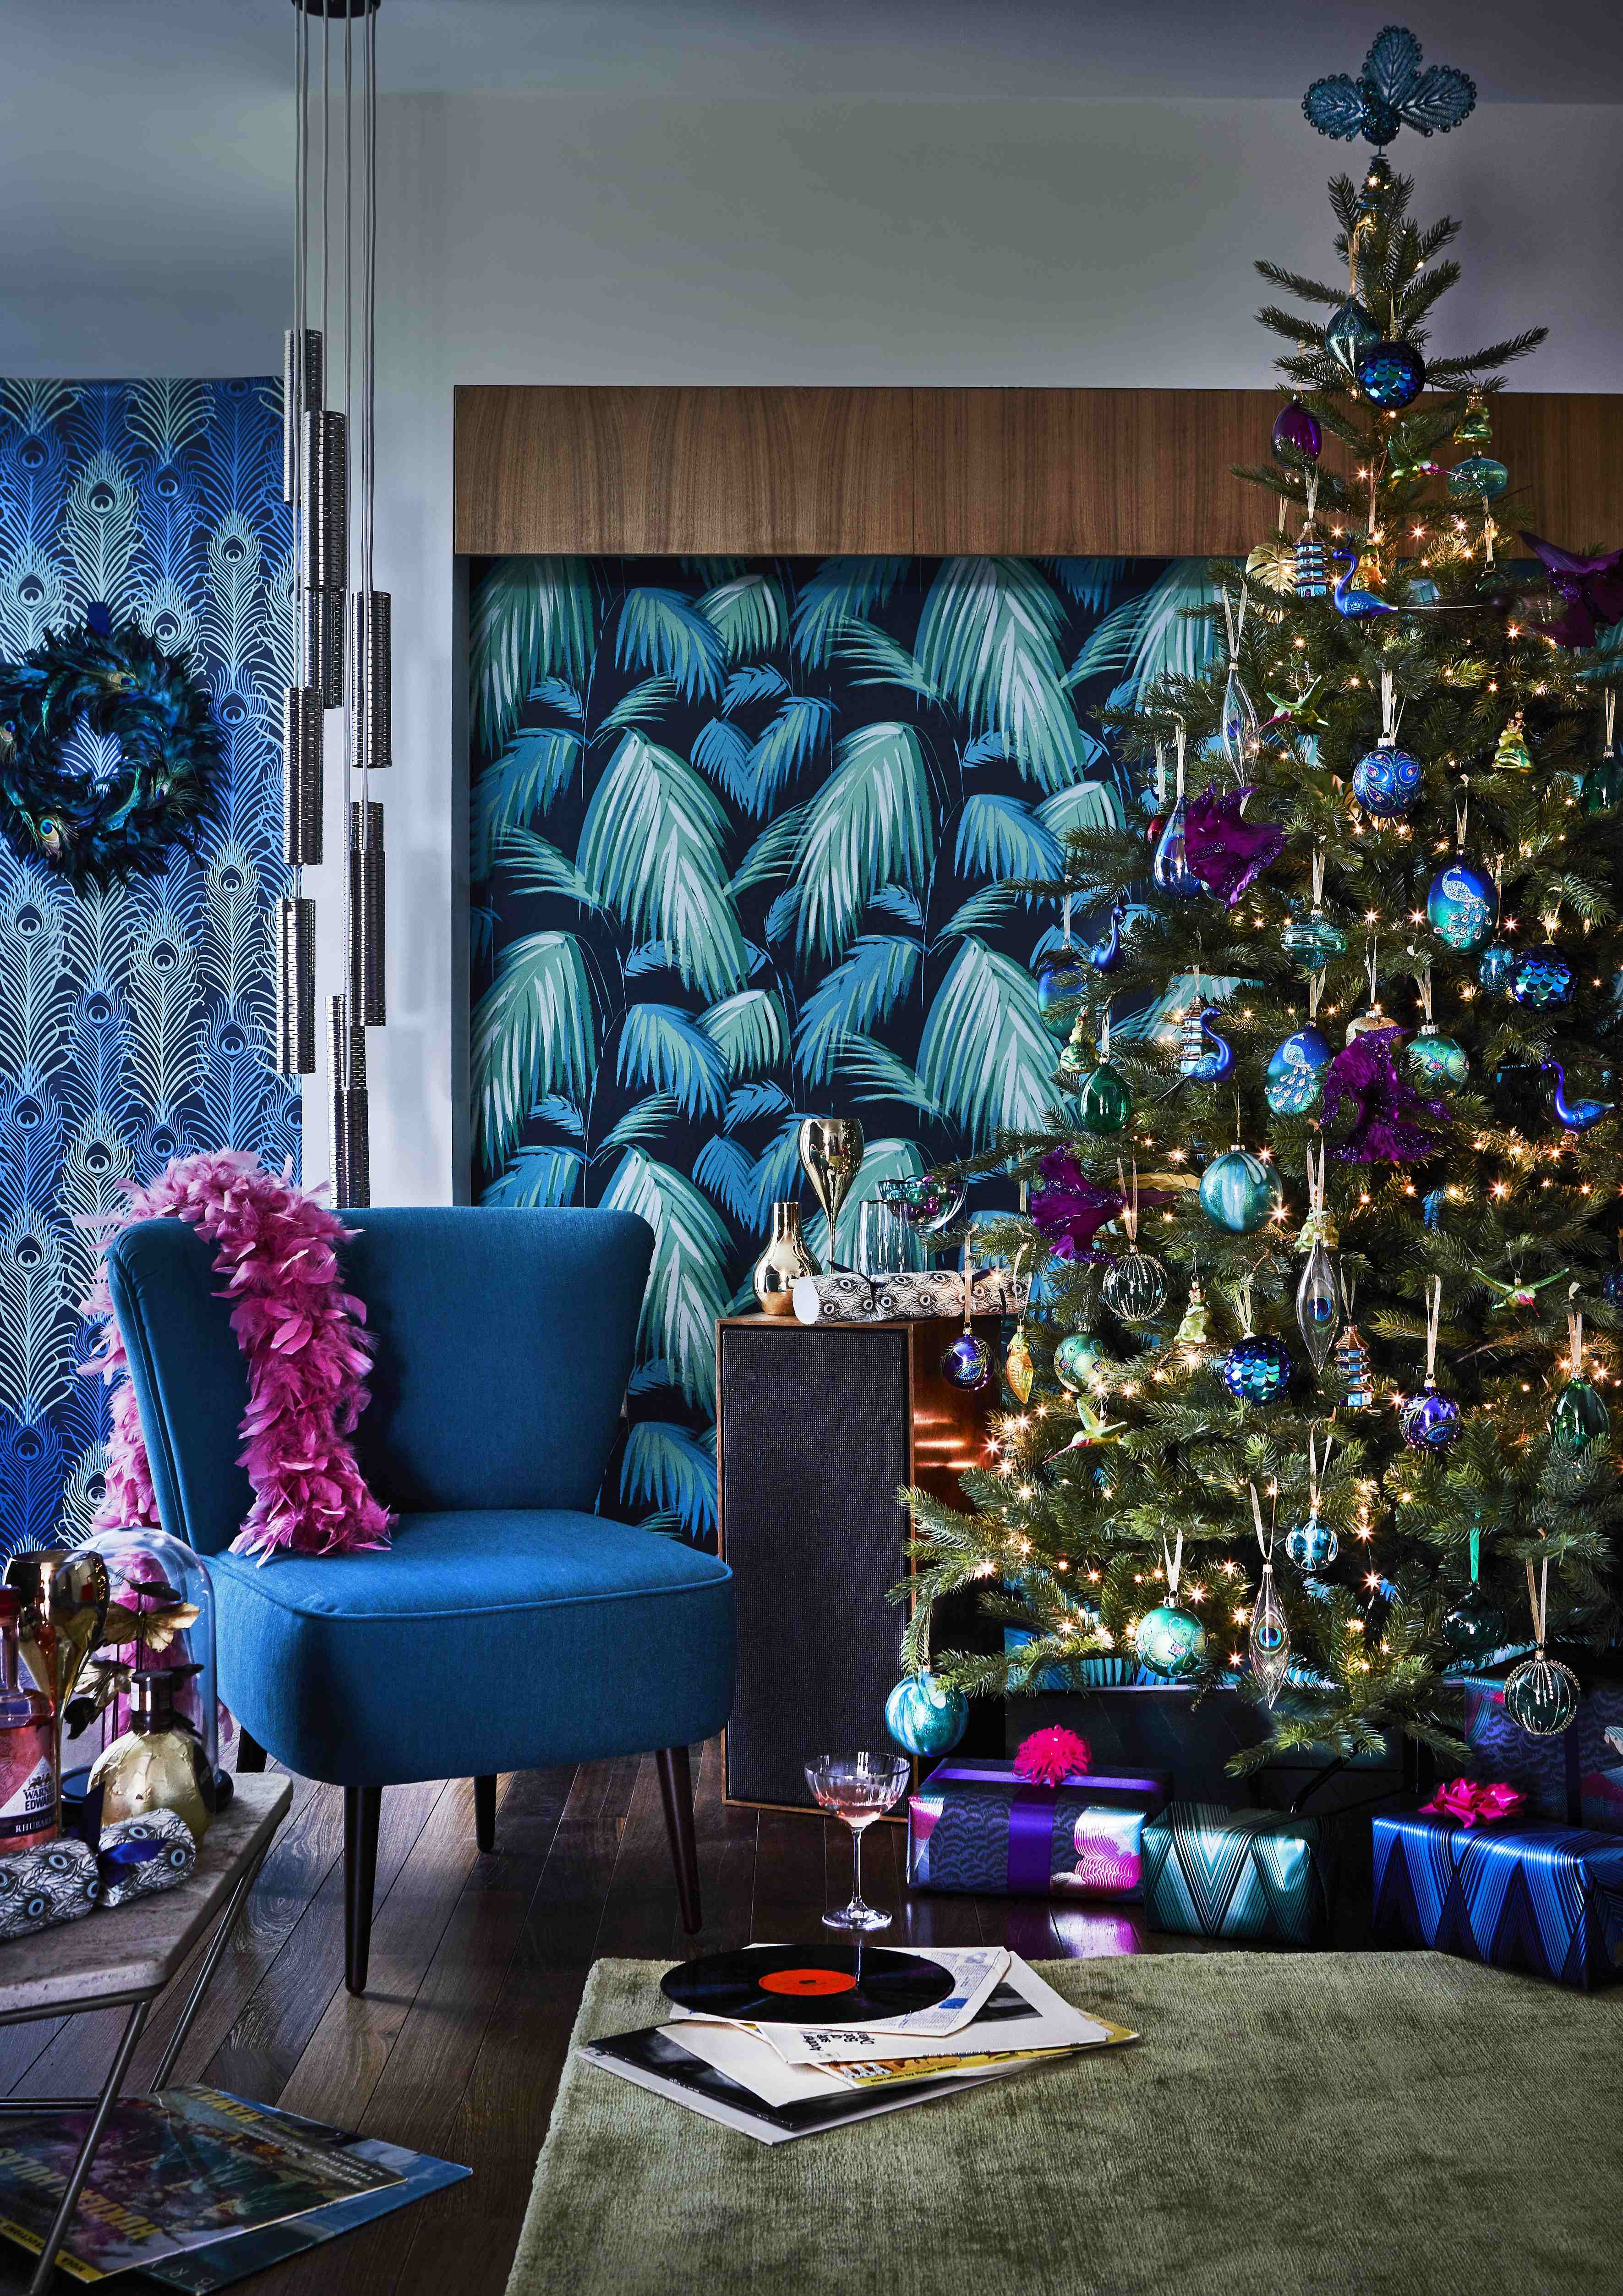 The Top Festive Interior Trends For 2016 You Need To Know